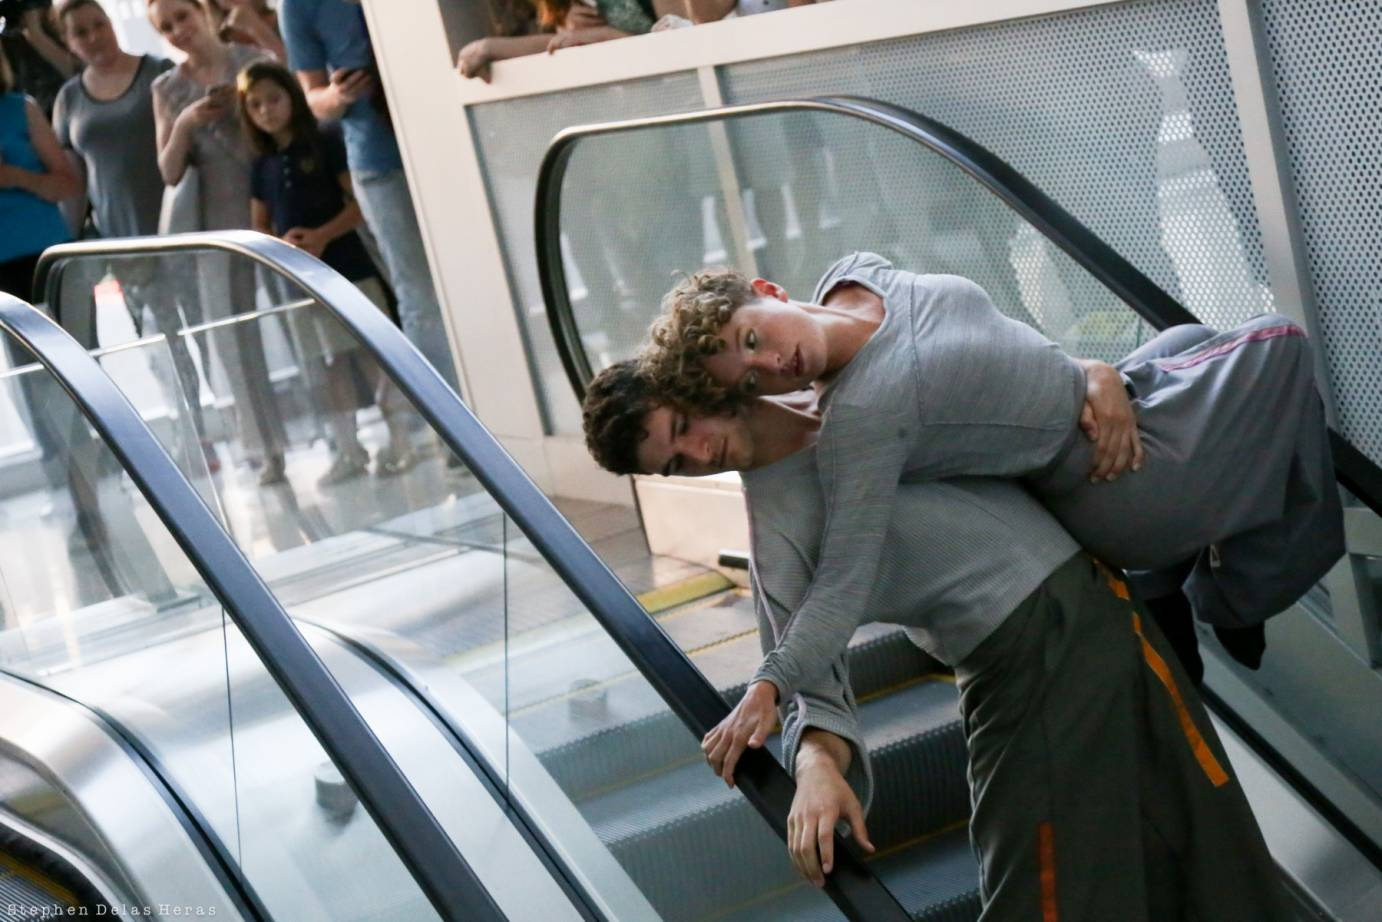 Two dancers in grey dance on a escalator. One performer picks up the other.